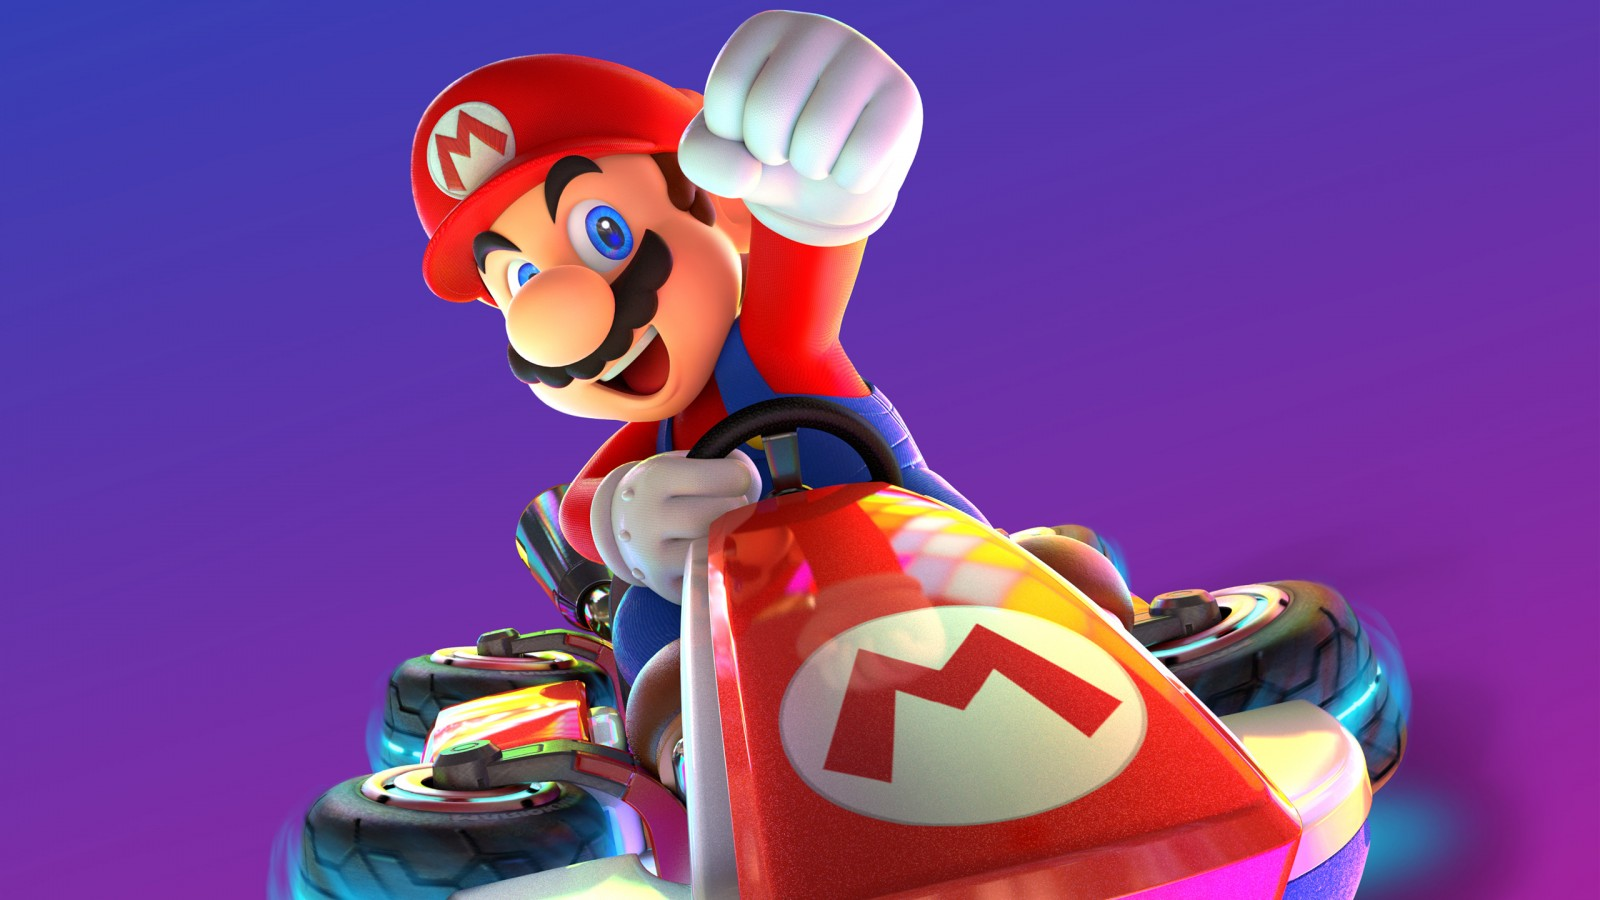 Iphone 5 Wallpaper Apple Mario Kart 8 Deluxe Wallpapers Hd Wallpapers Id 19598